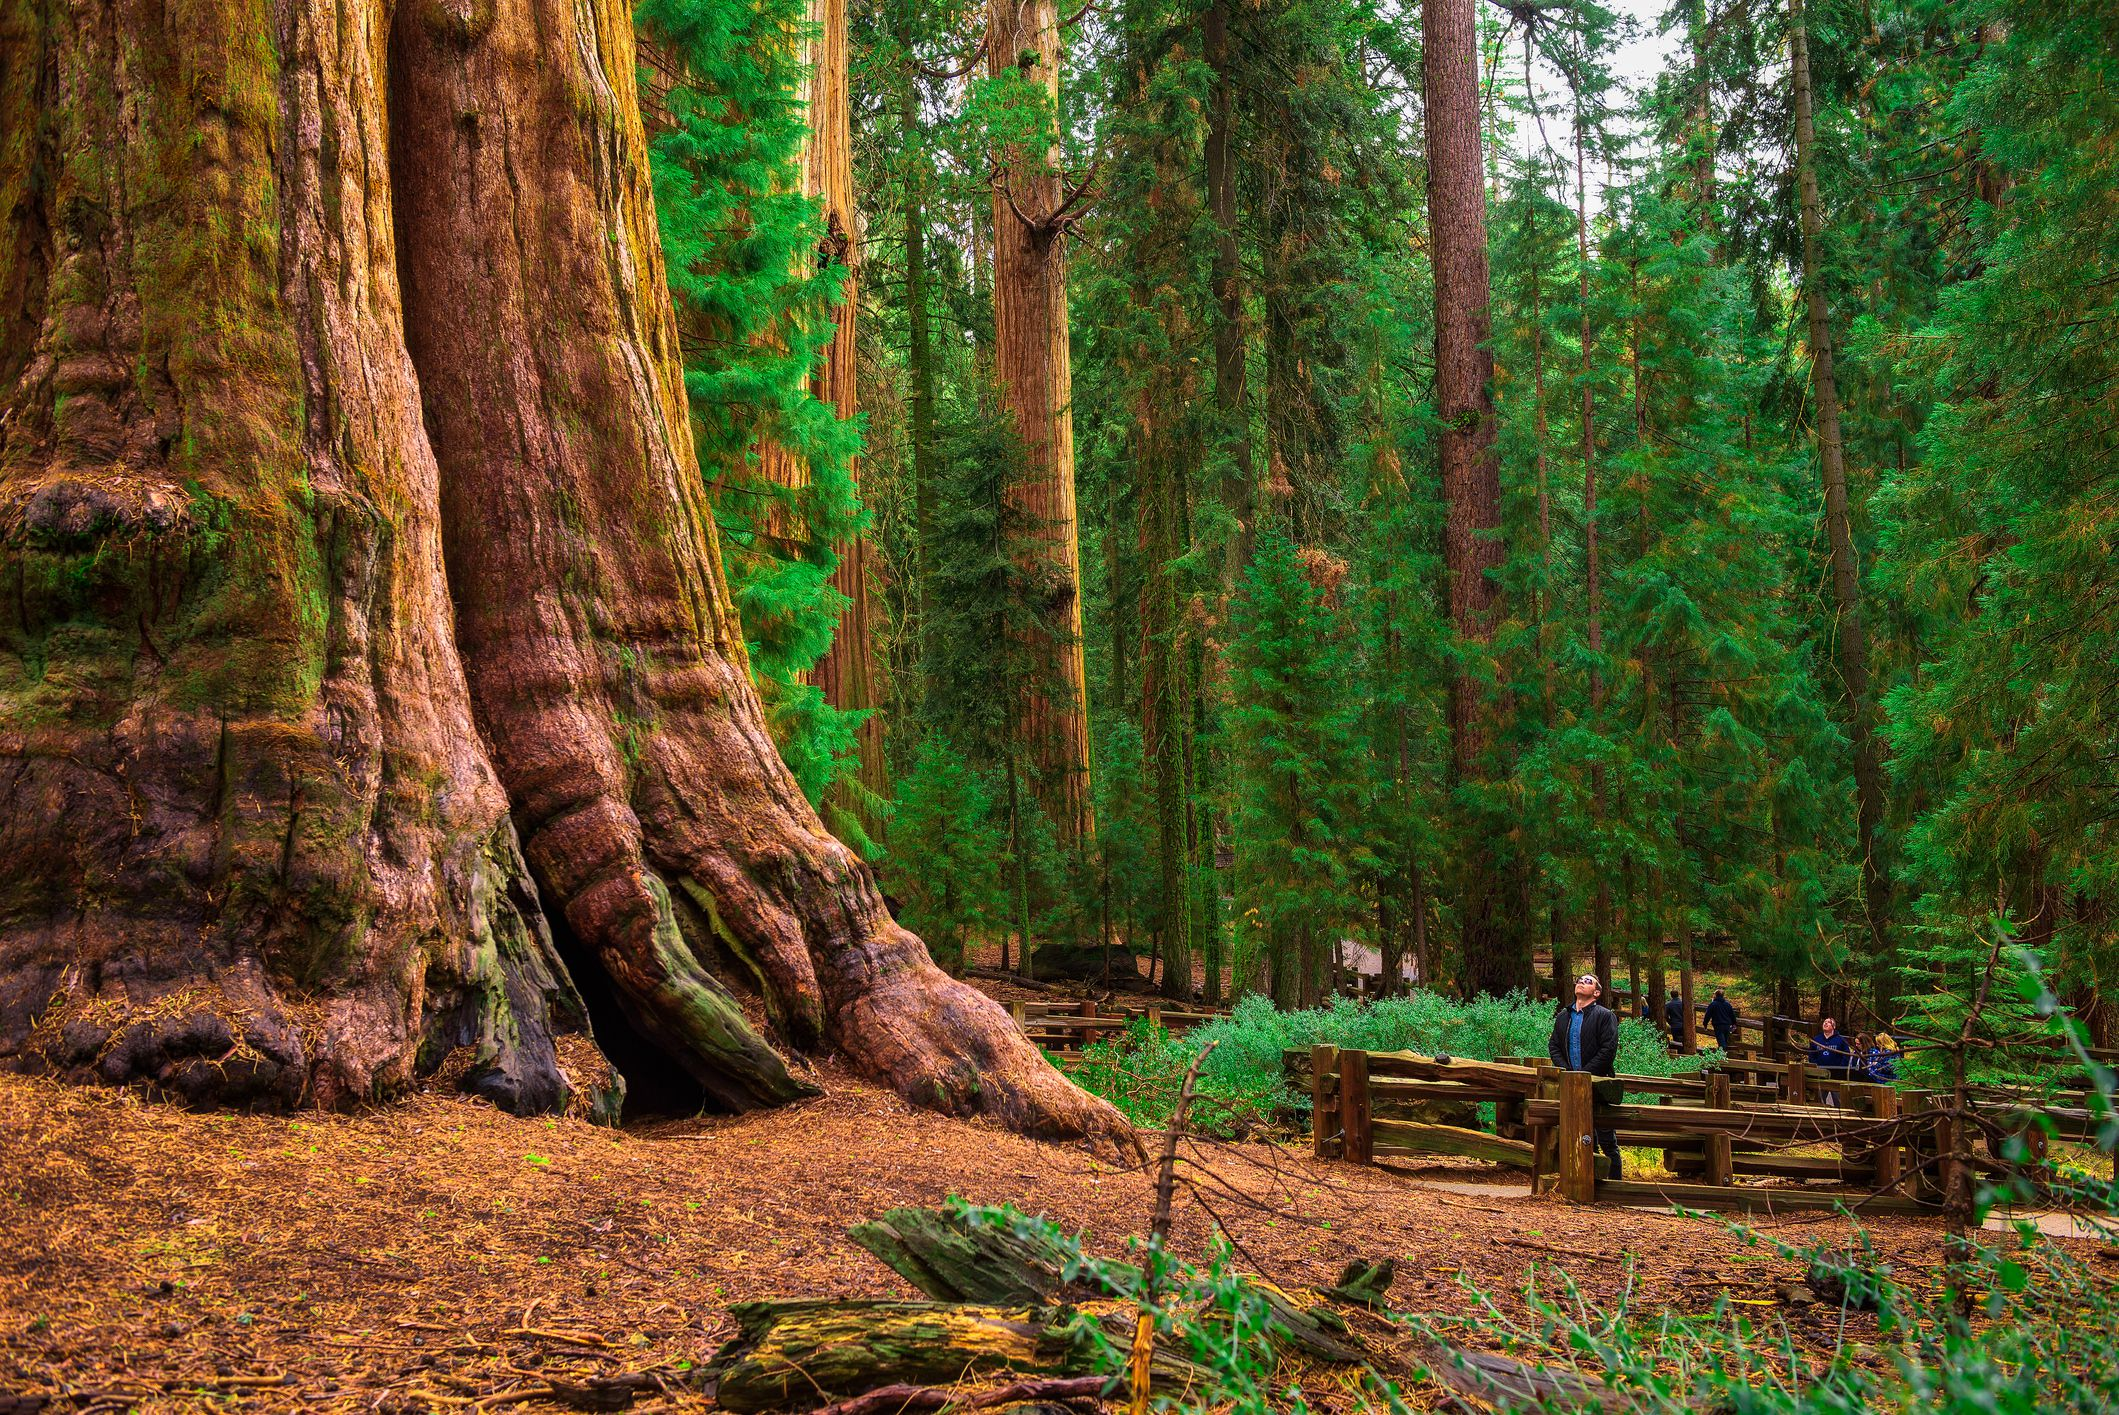 California Redwood Forests Where To See The Big Trees